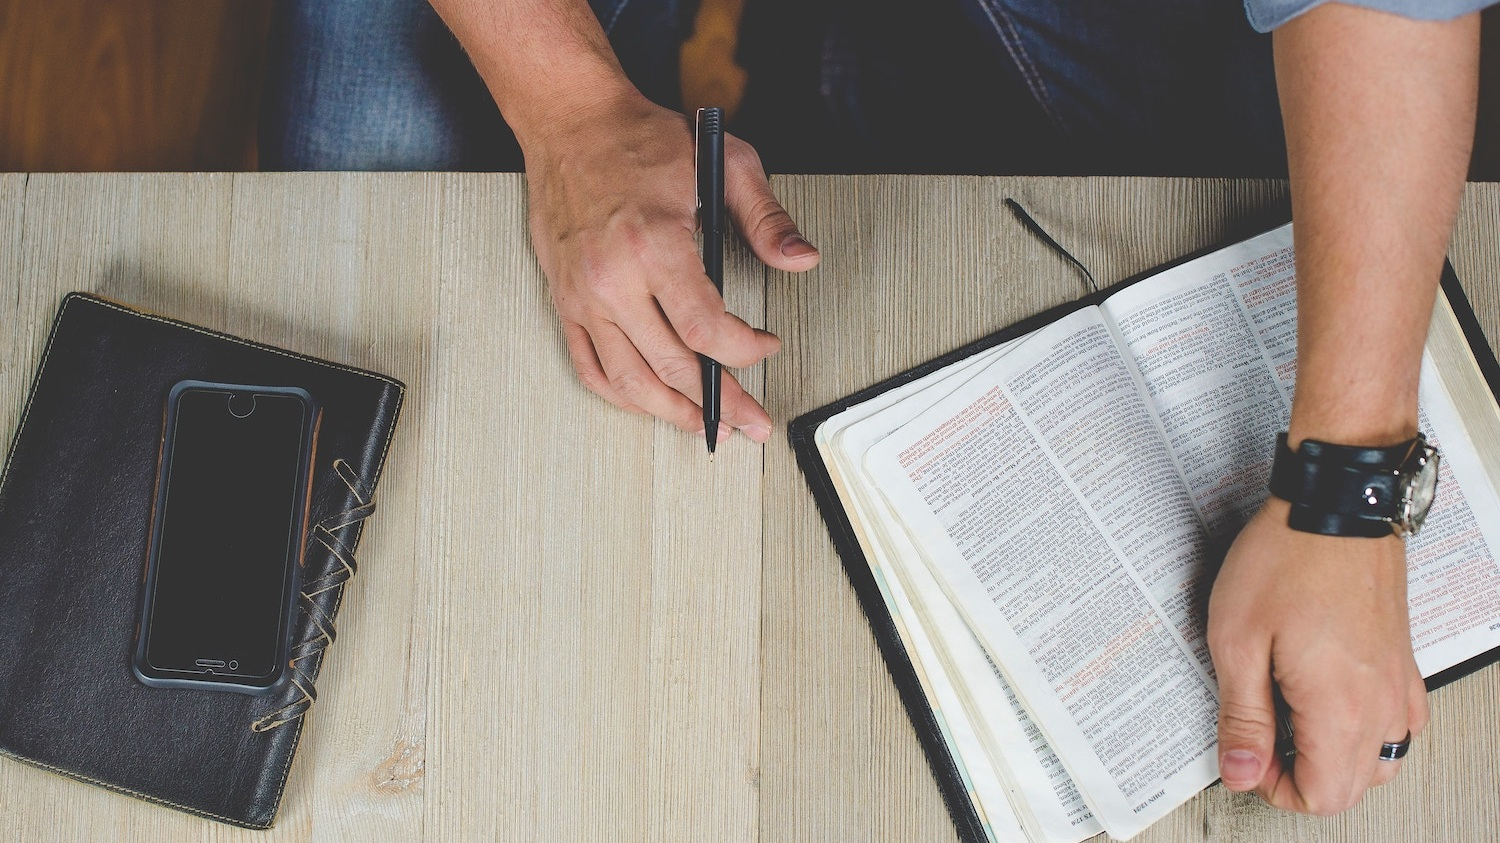 A desk with a person holding an open Bible and pen, with a phone and journal beside them